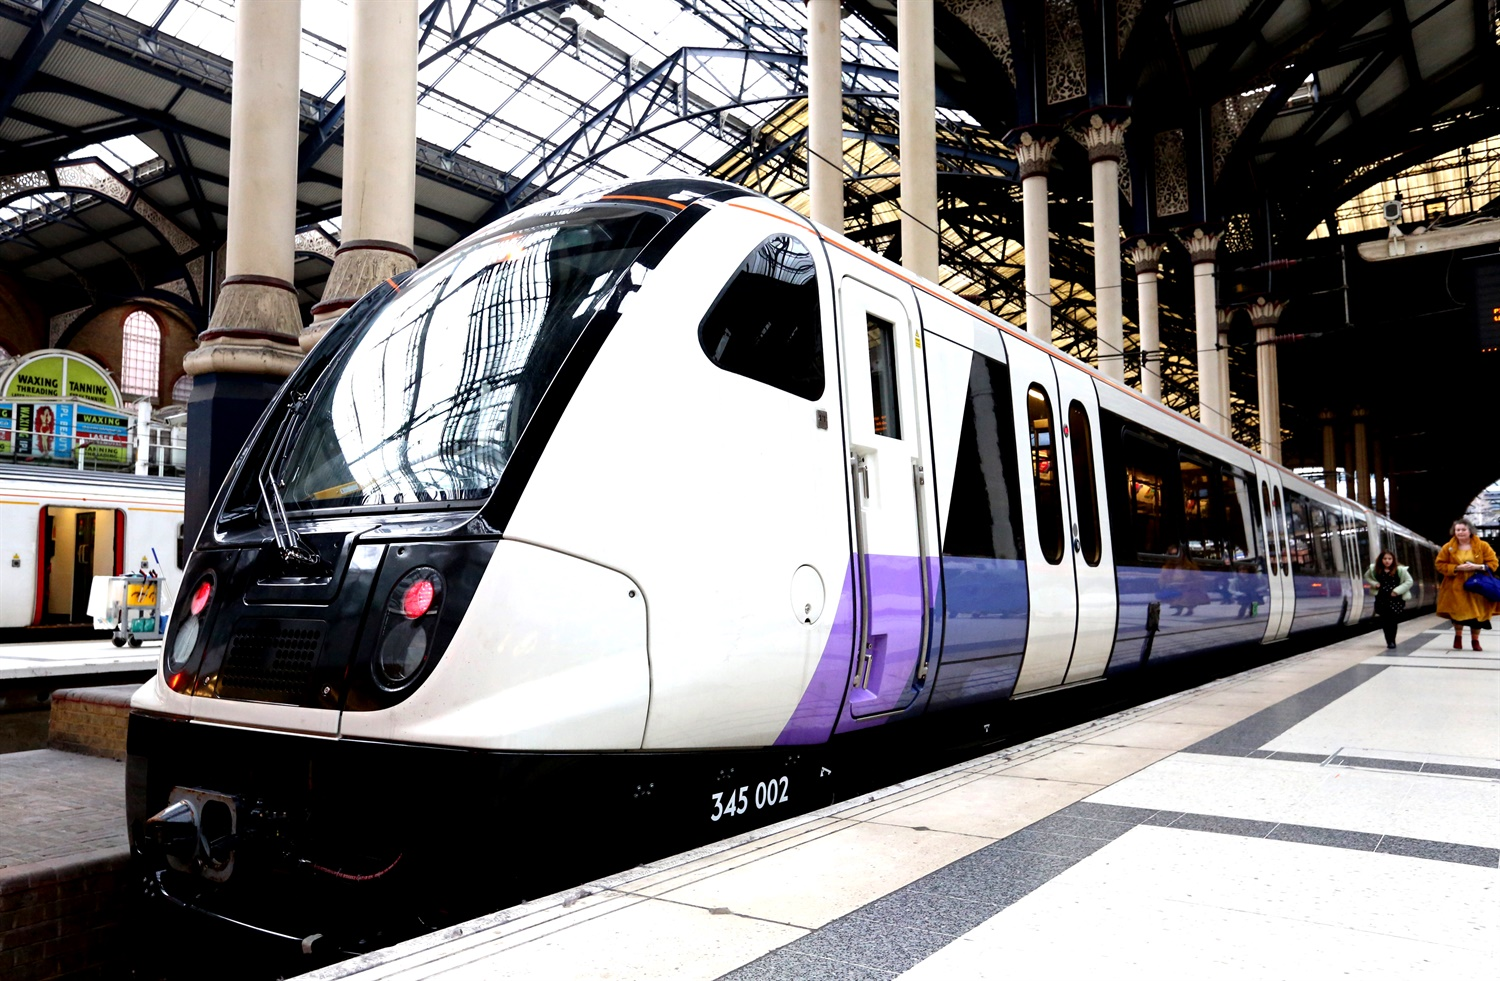 First Elizabeth Line train on track to enter service in May